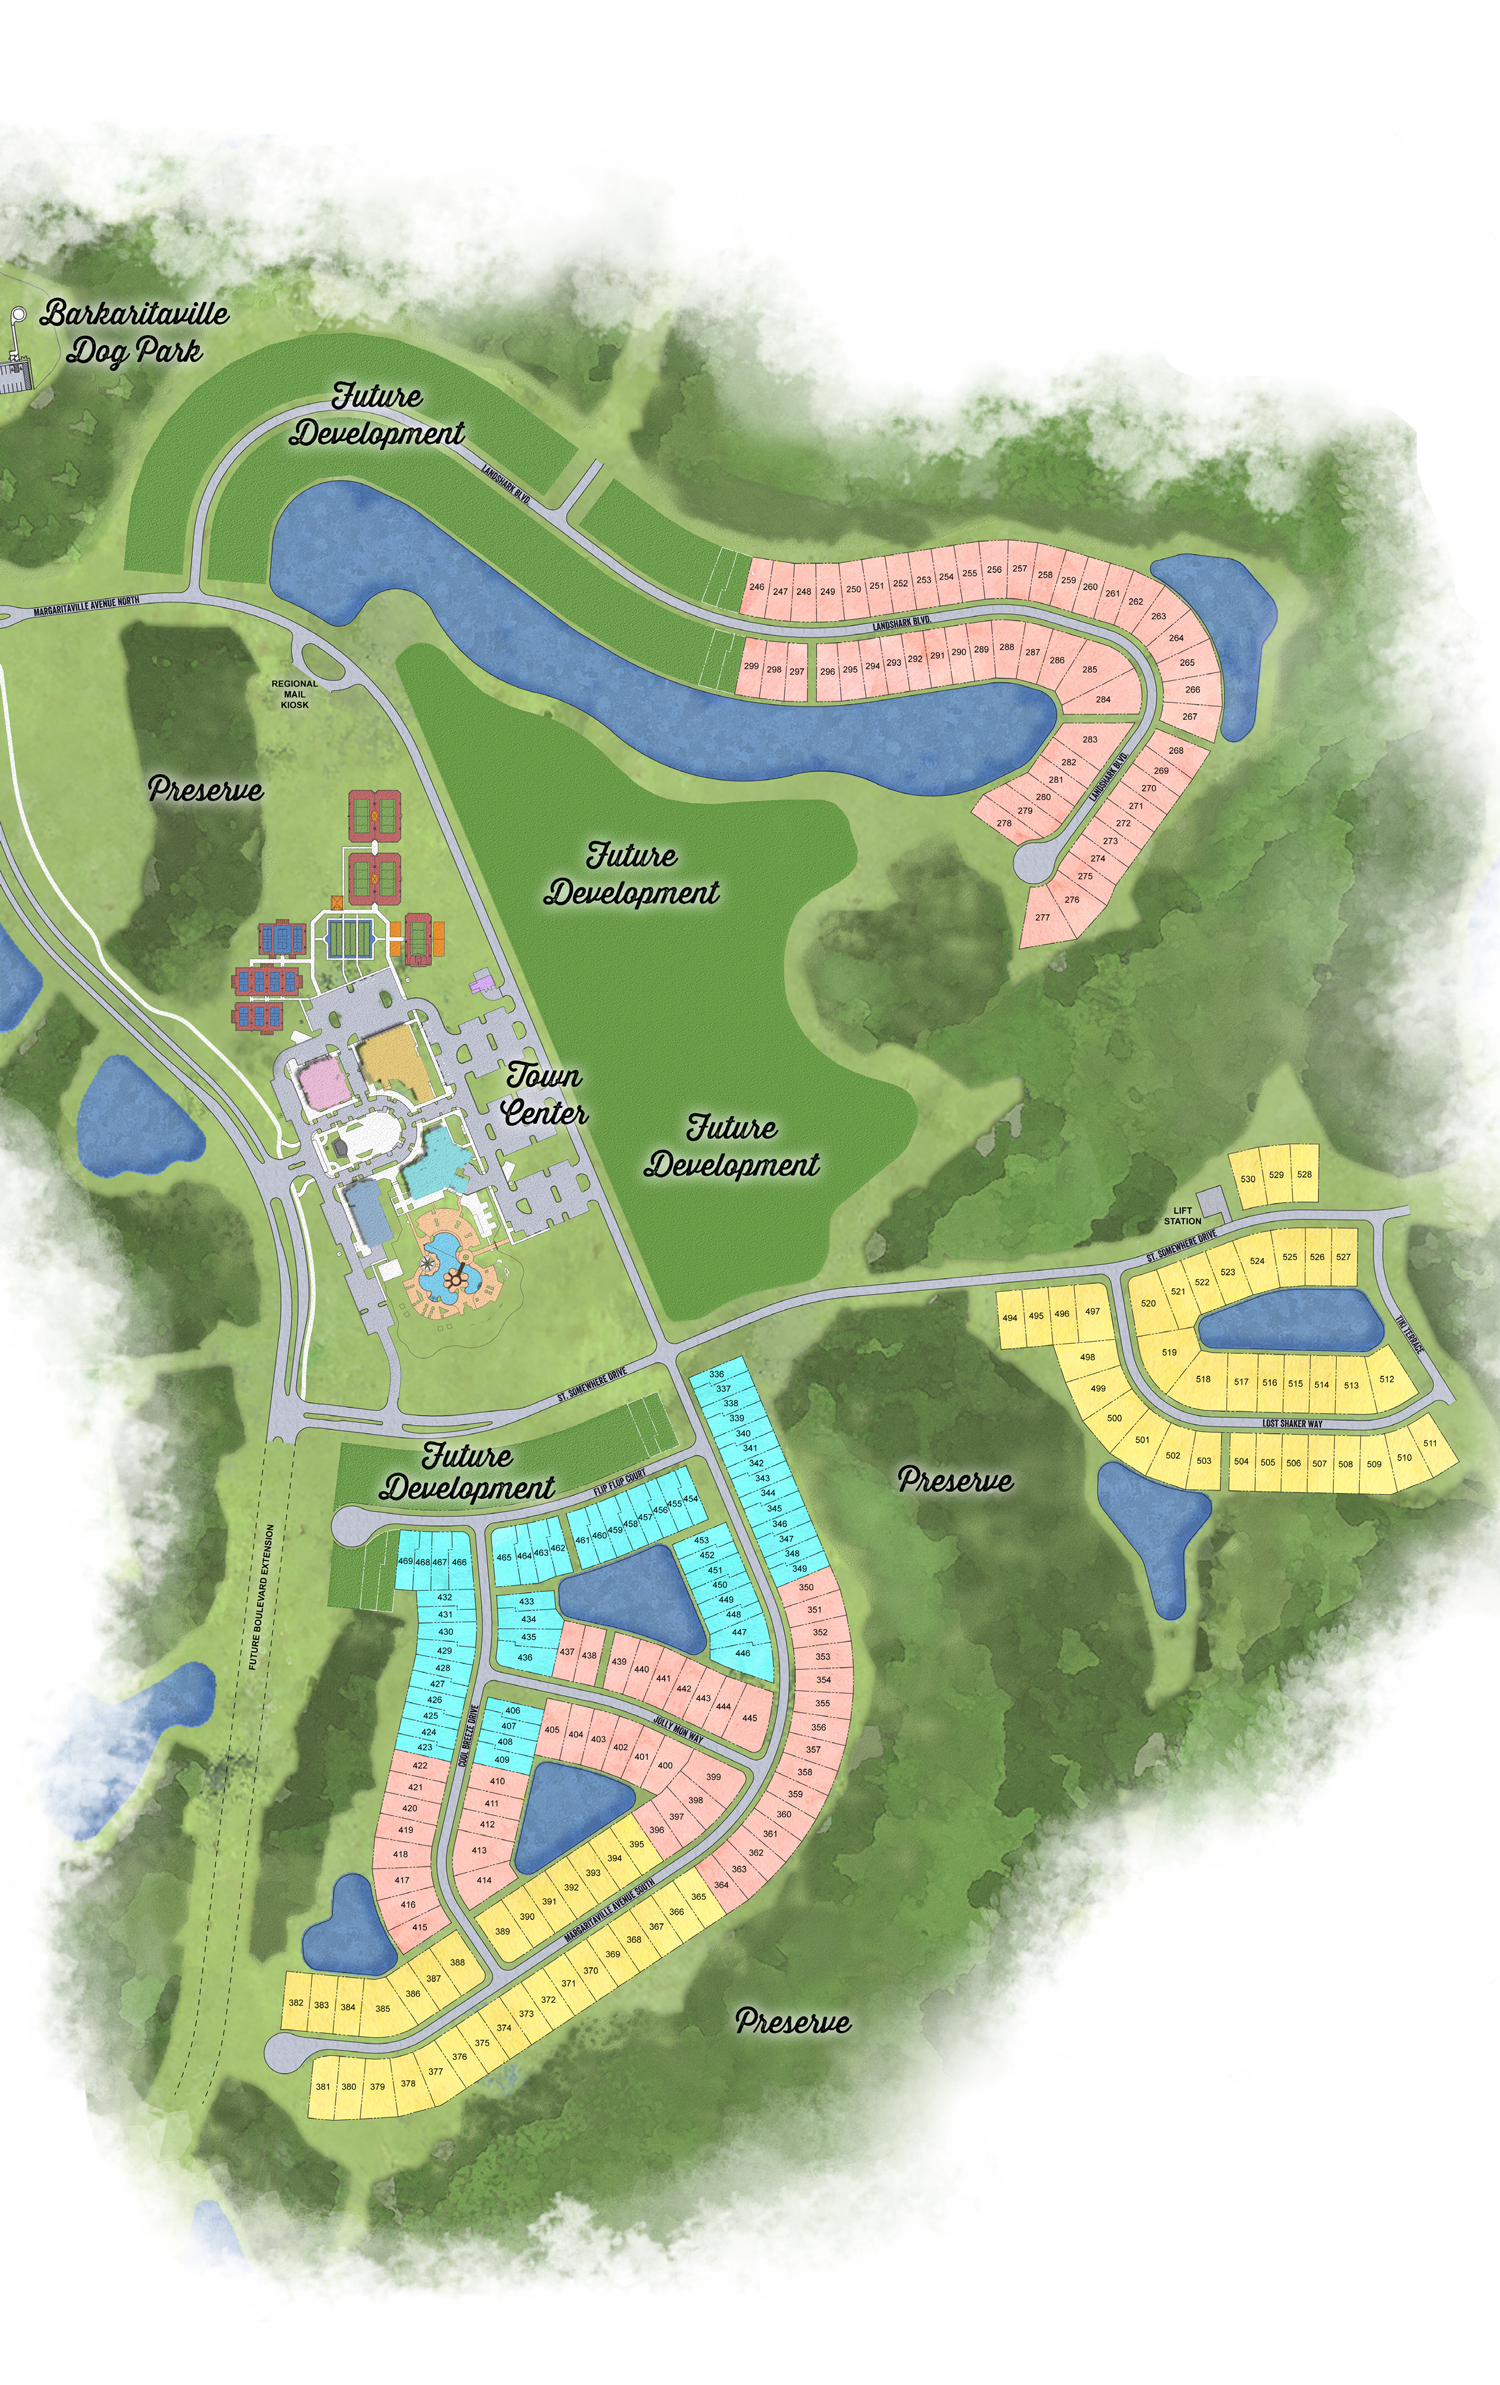 Latitude Margaritaville Hilton Head Plan with areas of community Phase 2 site plan and interest